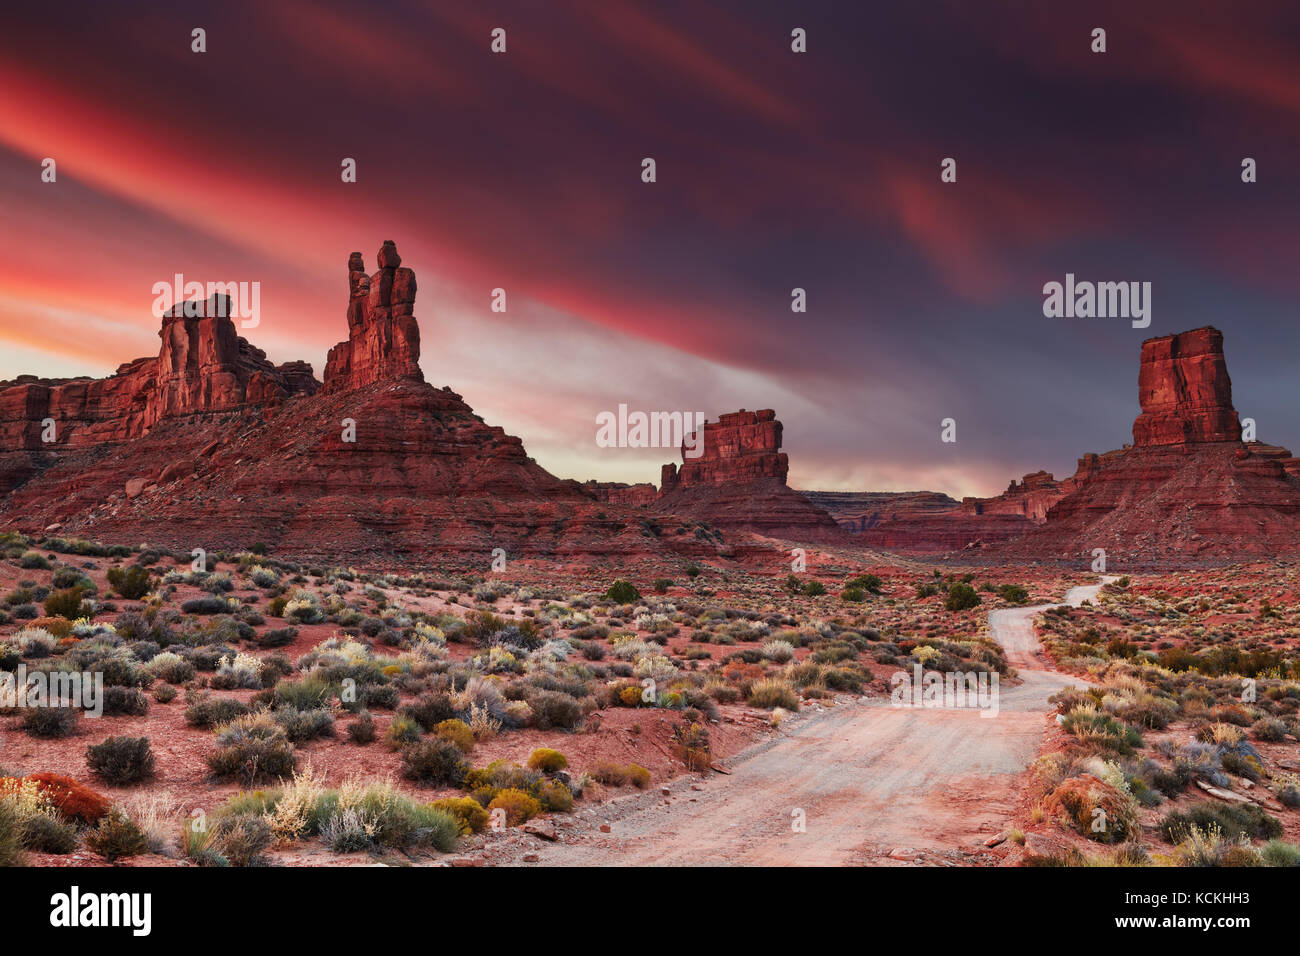 Valley of the Gods at sunset, Utah, USA - Stock Image